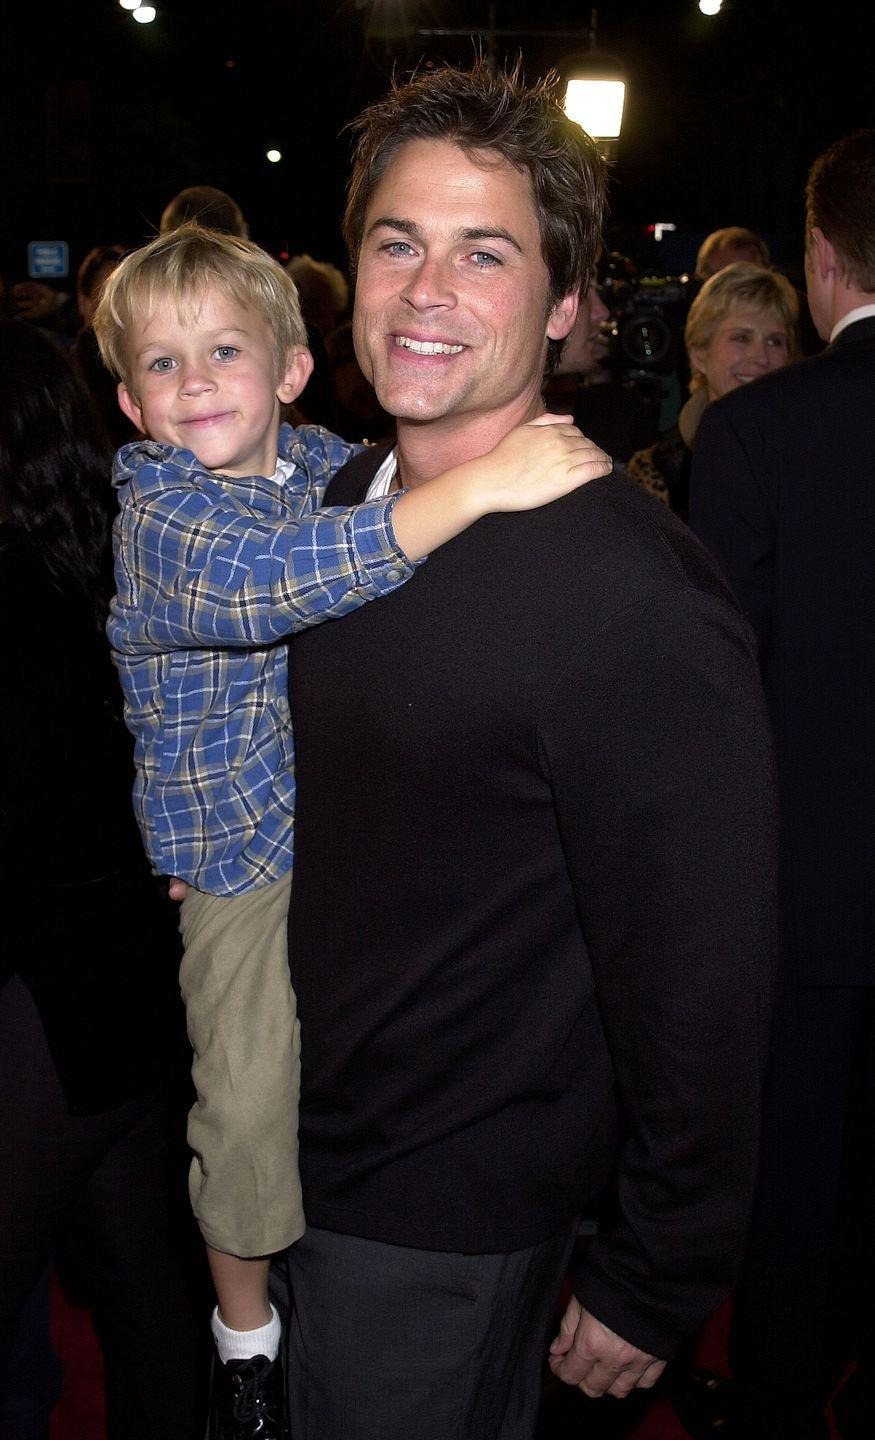 <p>Rob Lowe gives his son, John Owen, a lift at the premiere of <em>Harry Potter and The Sorcerer's Stone </em>in Los Angeles in 2001. </p>